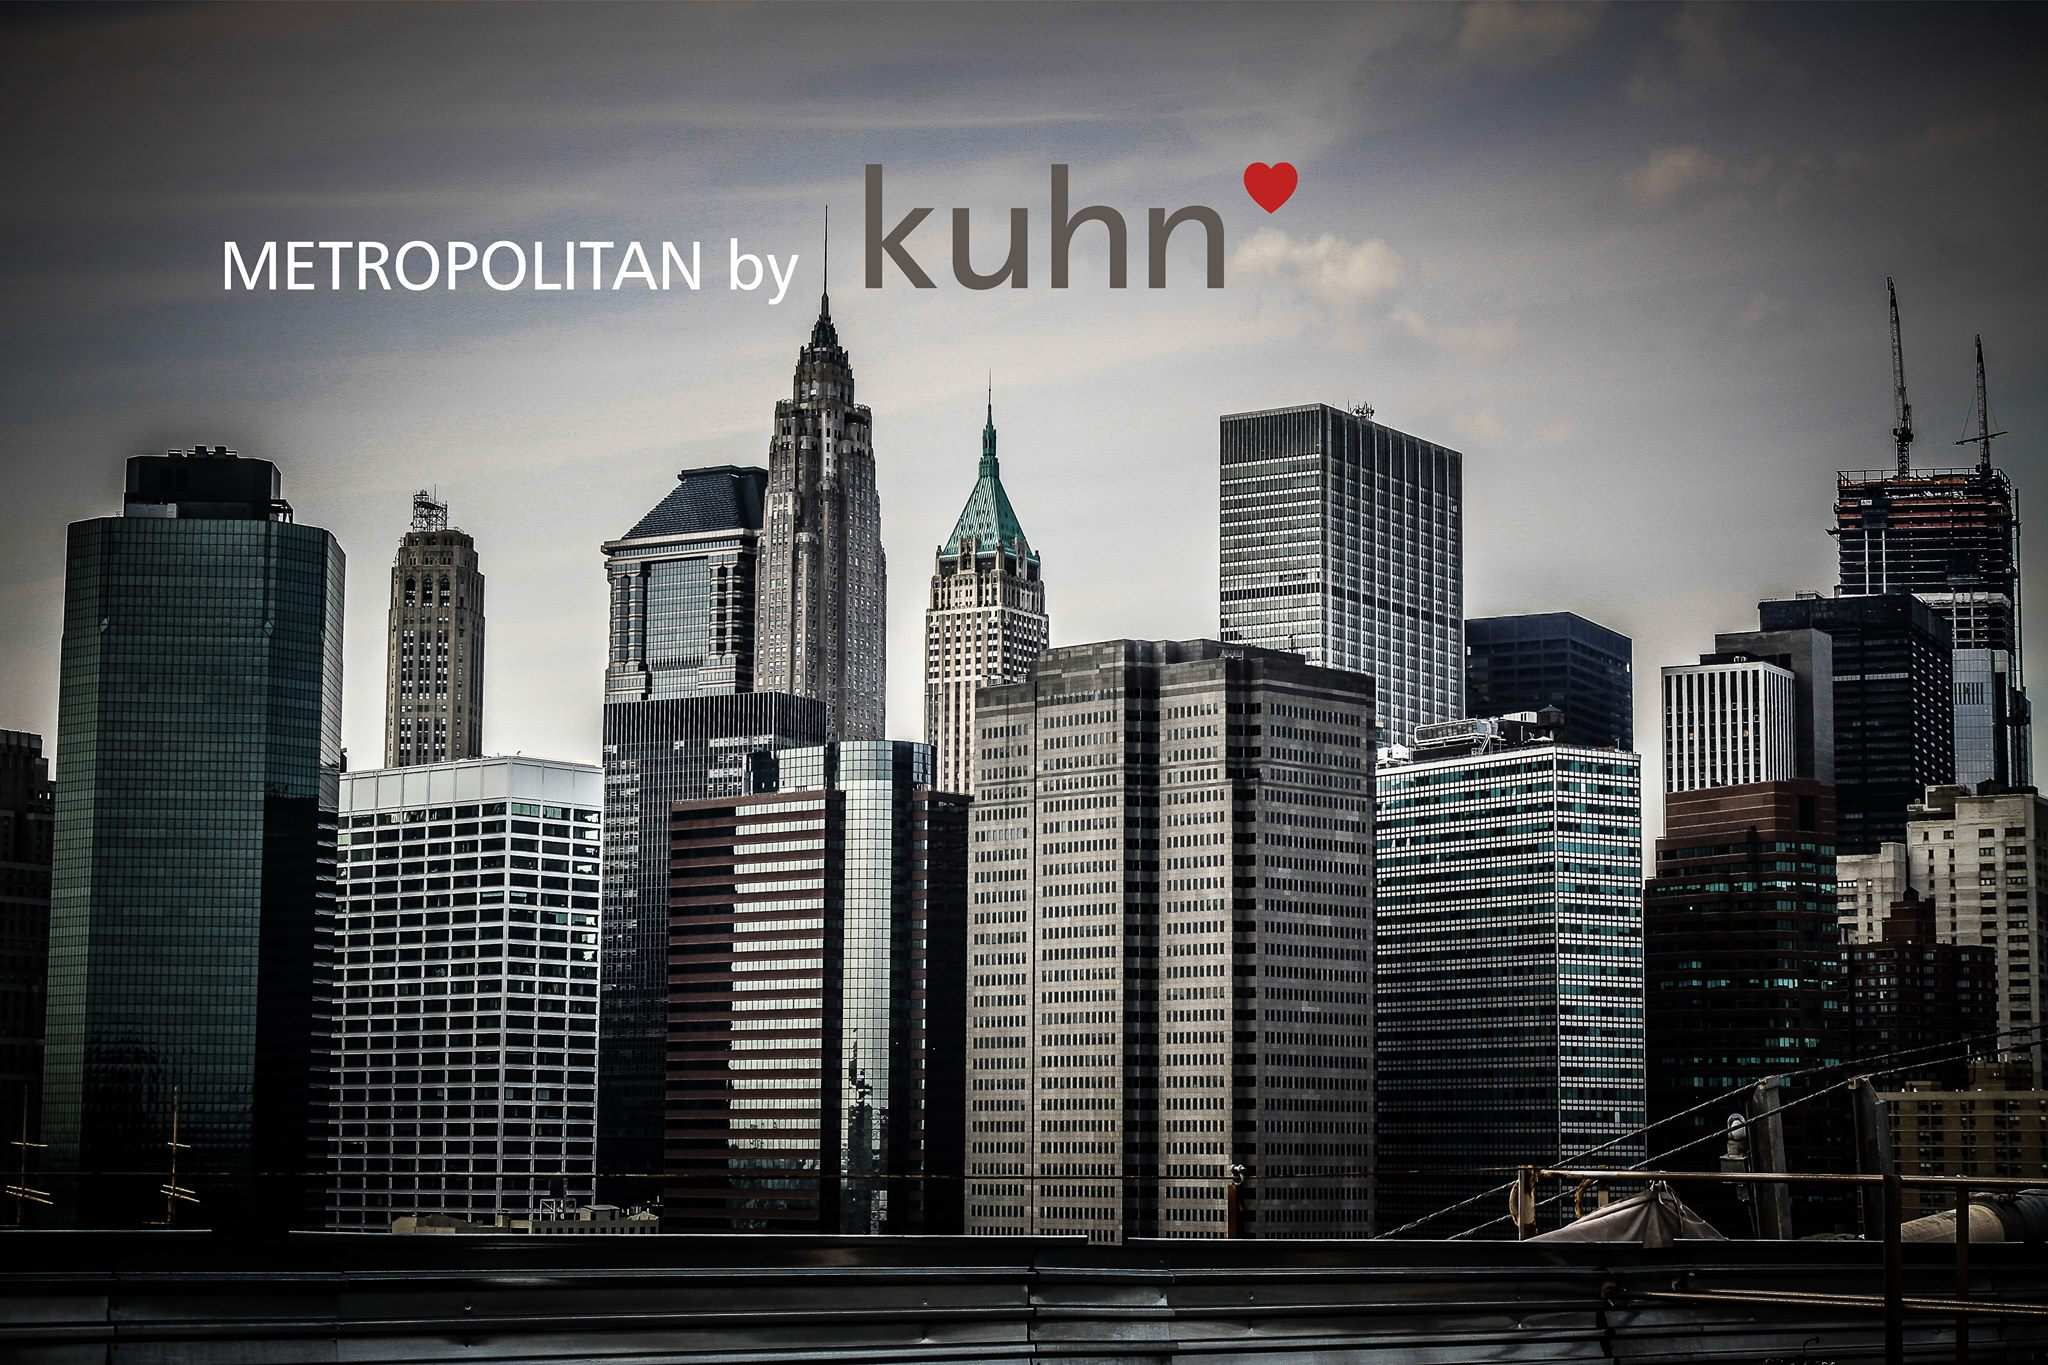 Metropolitain by Kuhn